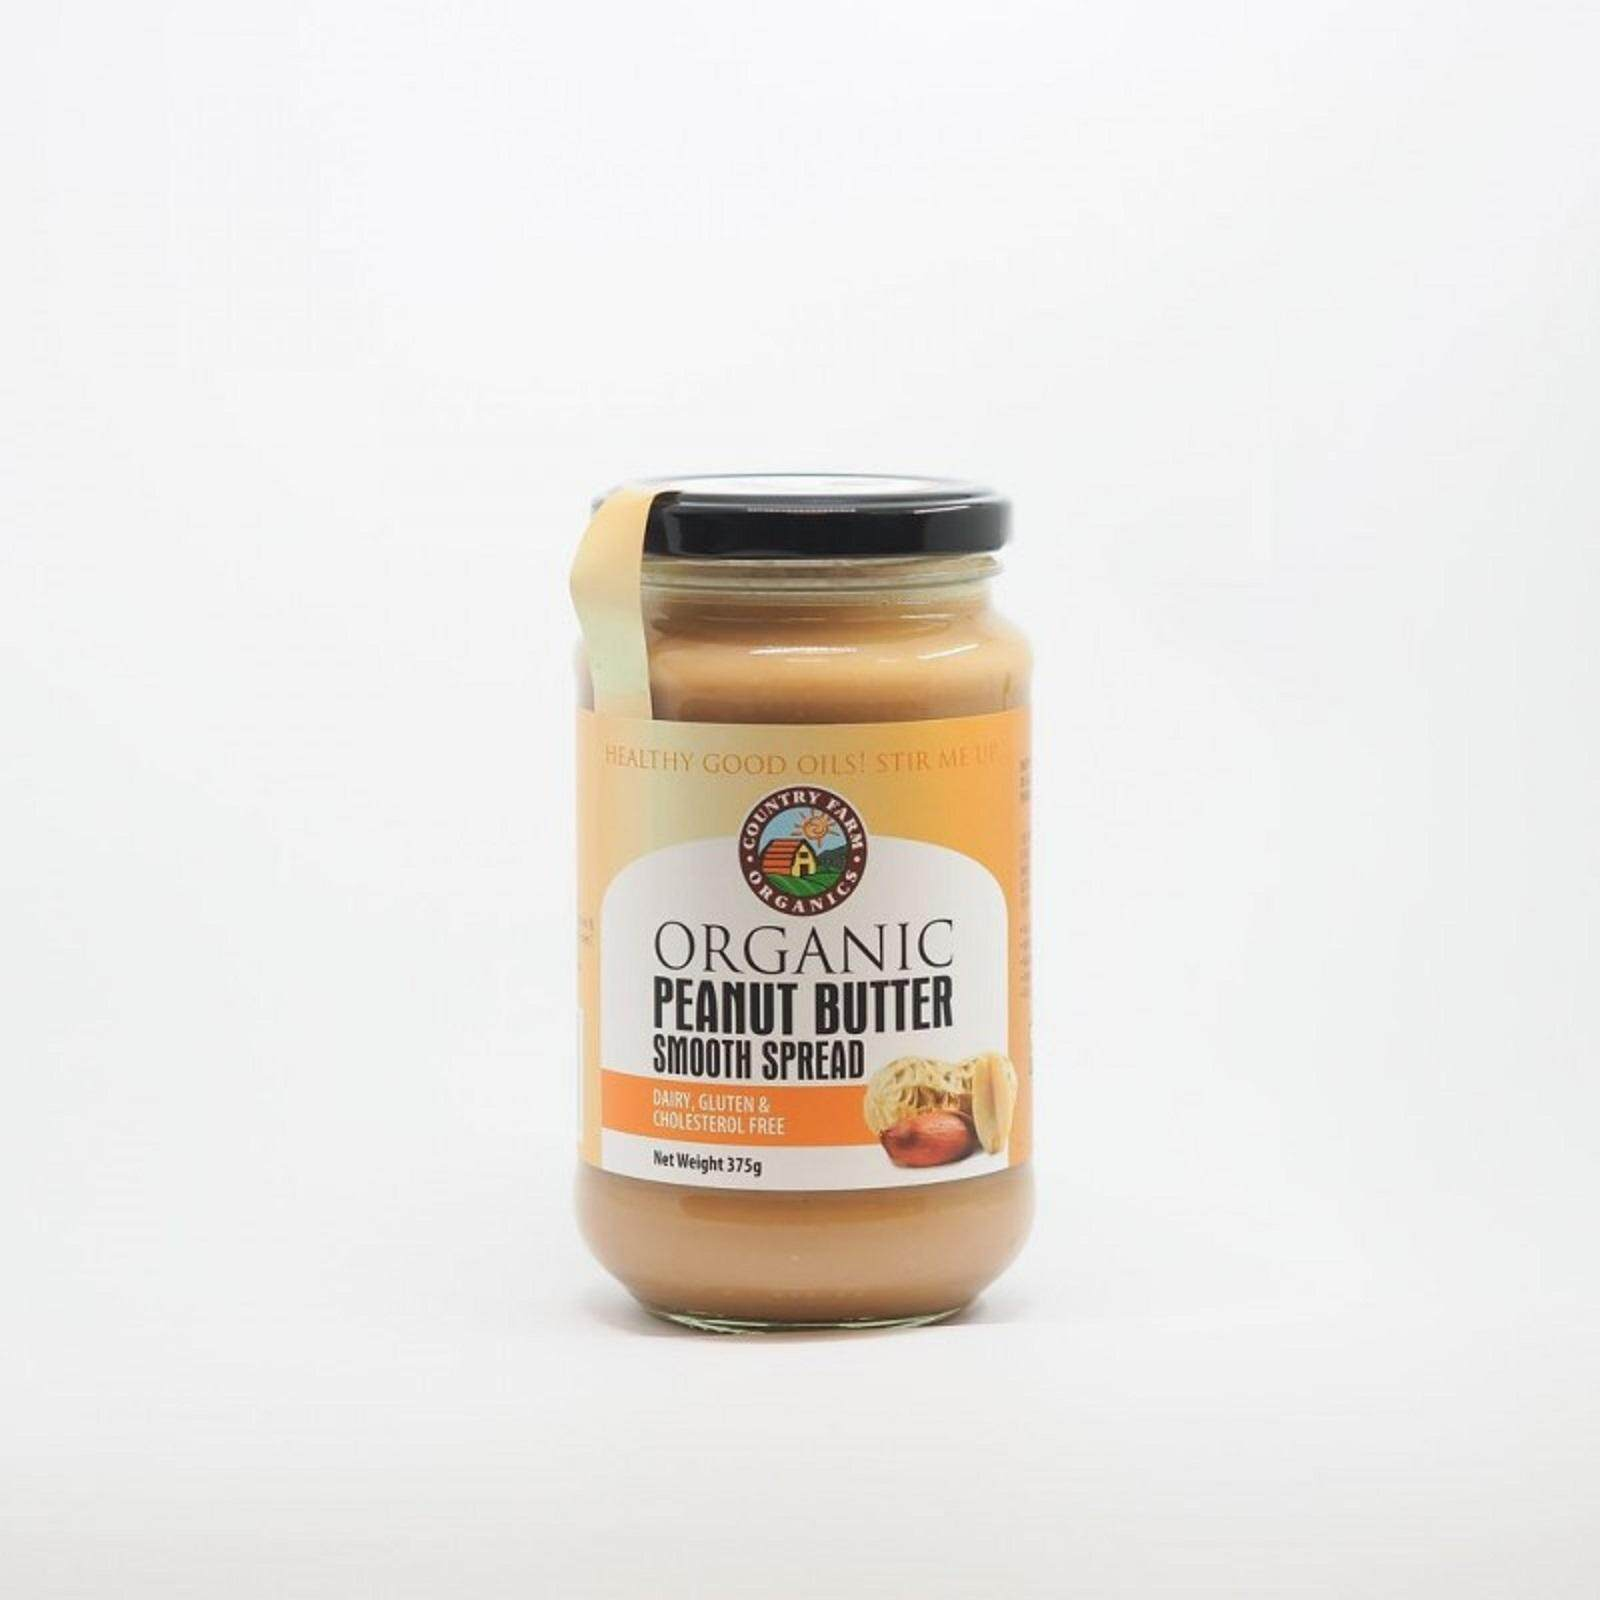 Country Farms Organic Peanut Butter Smooth- 375g [Product of Australia, Certified by NASAA]